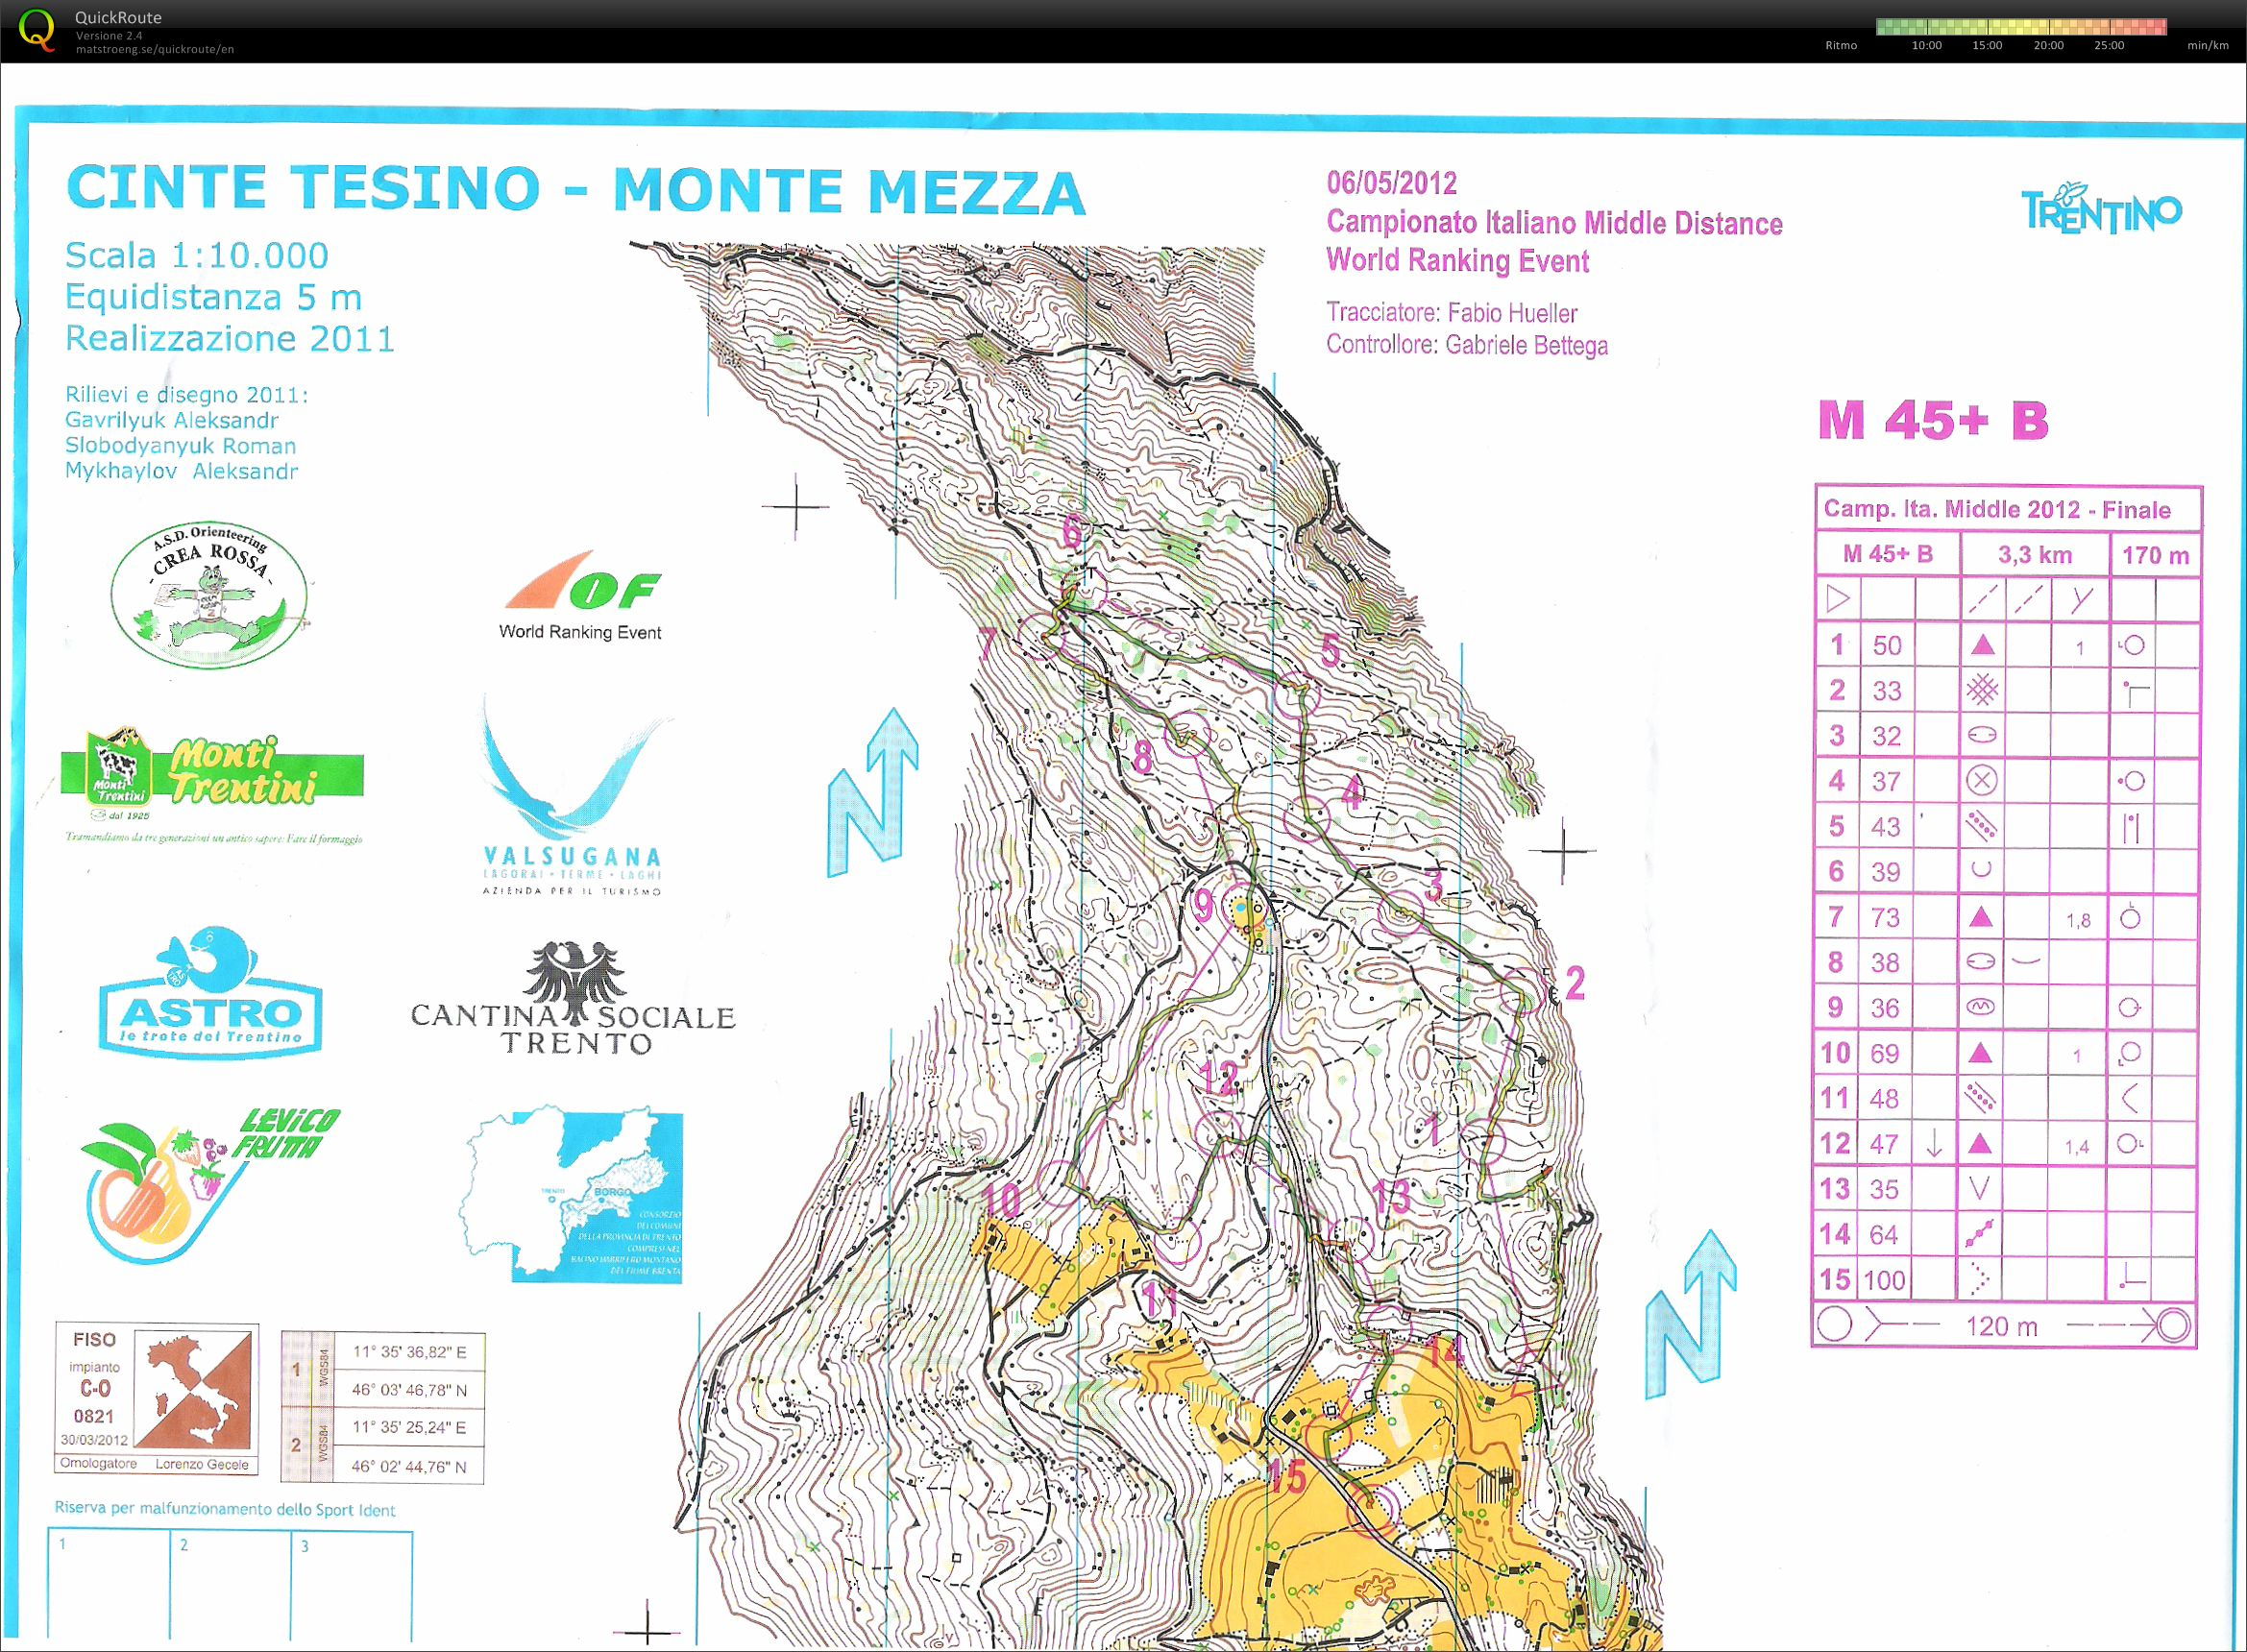 Campionato Italiano Middle Distance M45 B (2012-05-06)